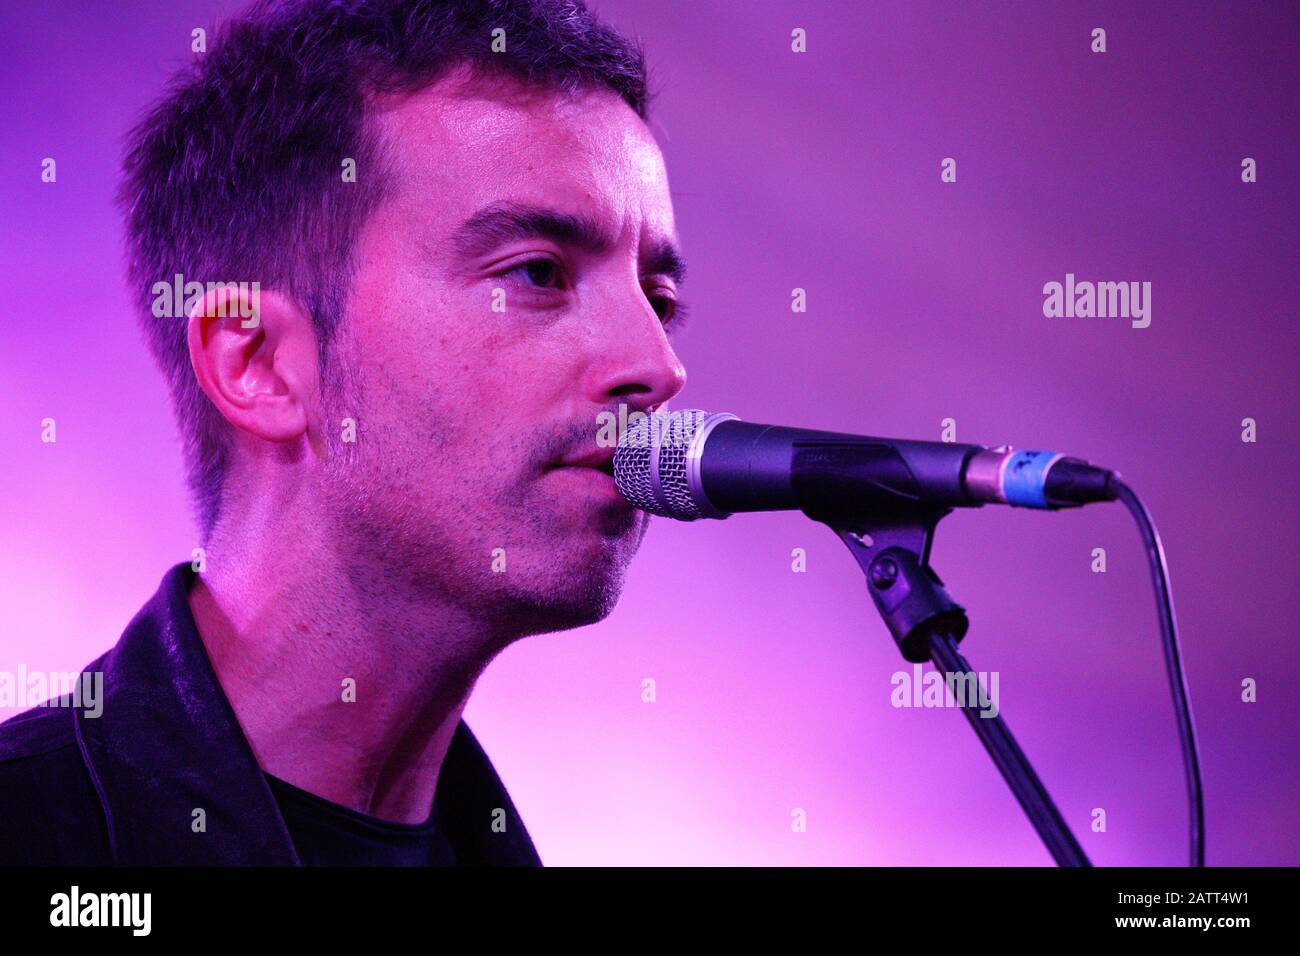 Turin, Italy. 14th September 2018. The Italian songwriter Diodato sings at the Proxima Festival in Turin. Credit: MLBARIONA/Alamy Stock Photo Stock Photo